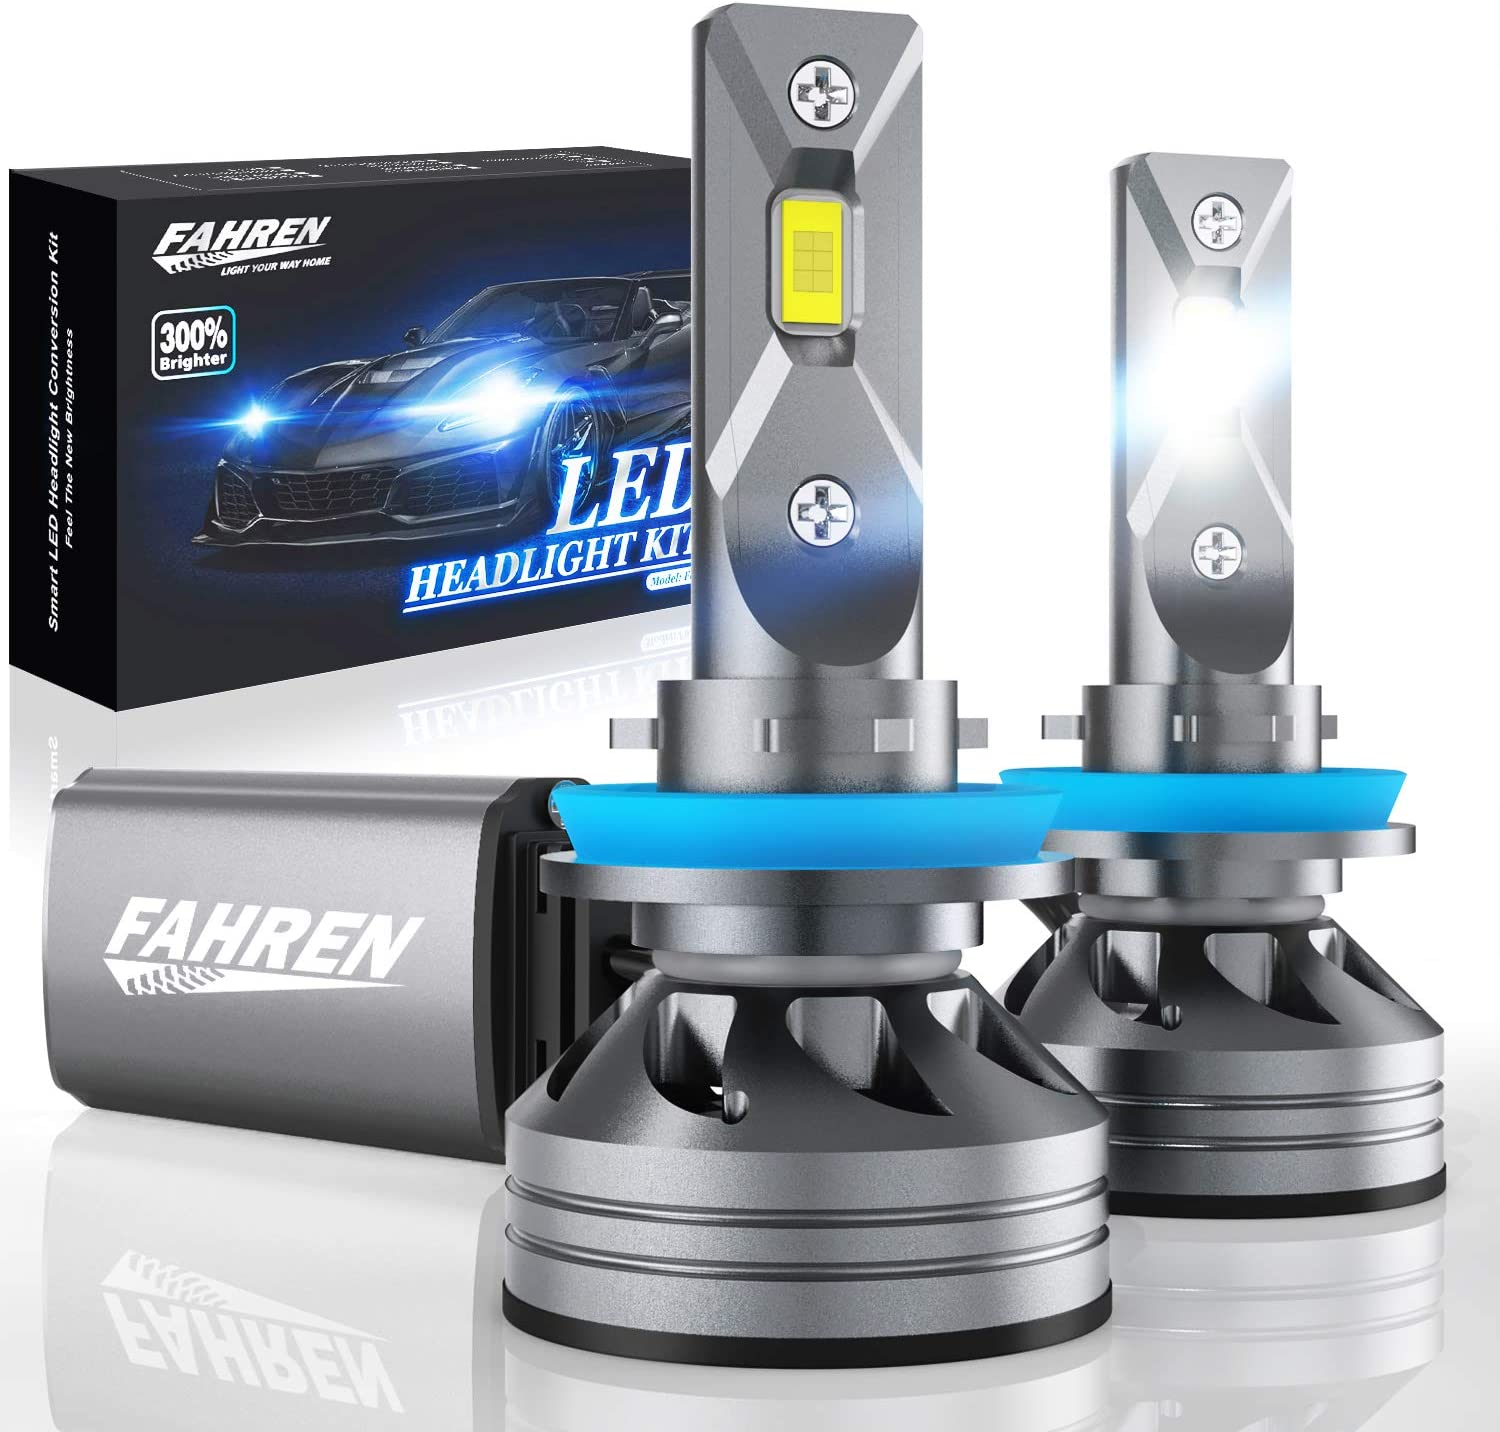 Fahren LED Headlight Kit